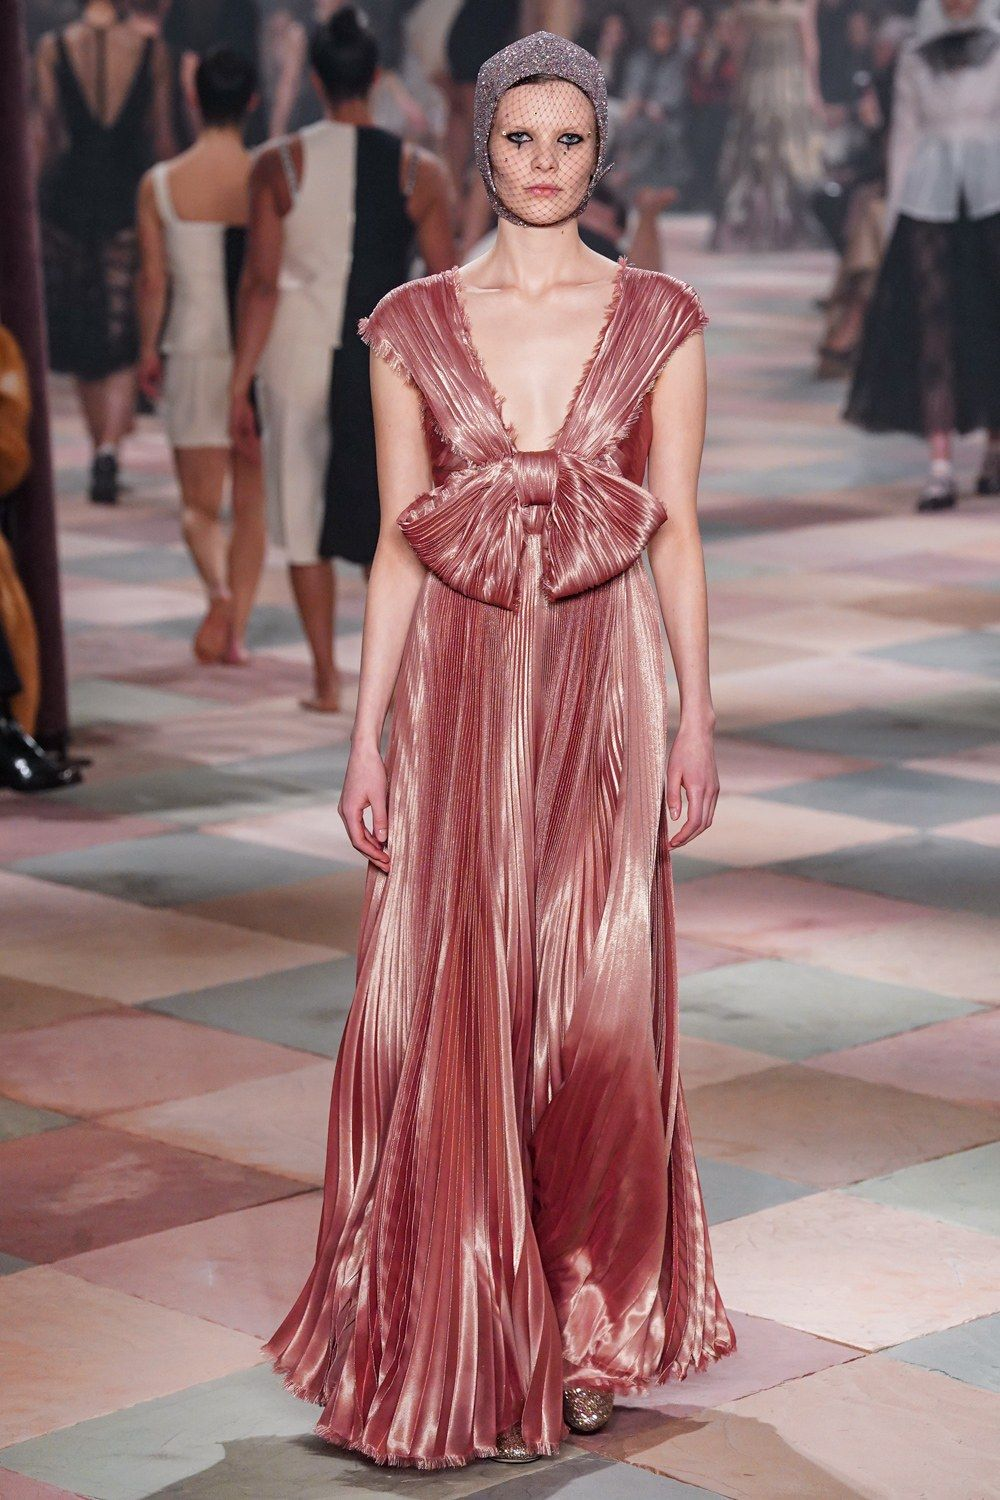 cd47018a14 Haute Couture Glamour: CHRISTIAN DIOR January 21, 2019   ZsaZsa Bellagio -  Like No Other